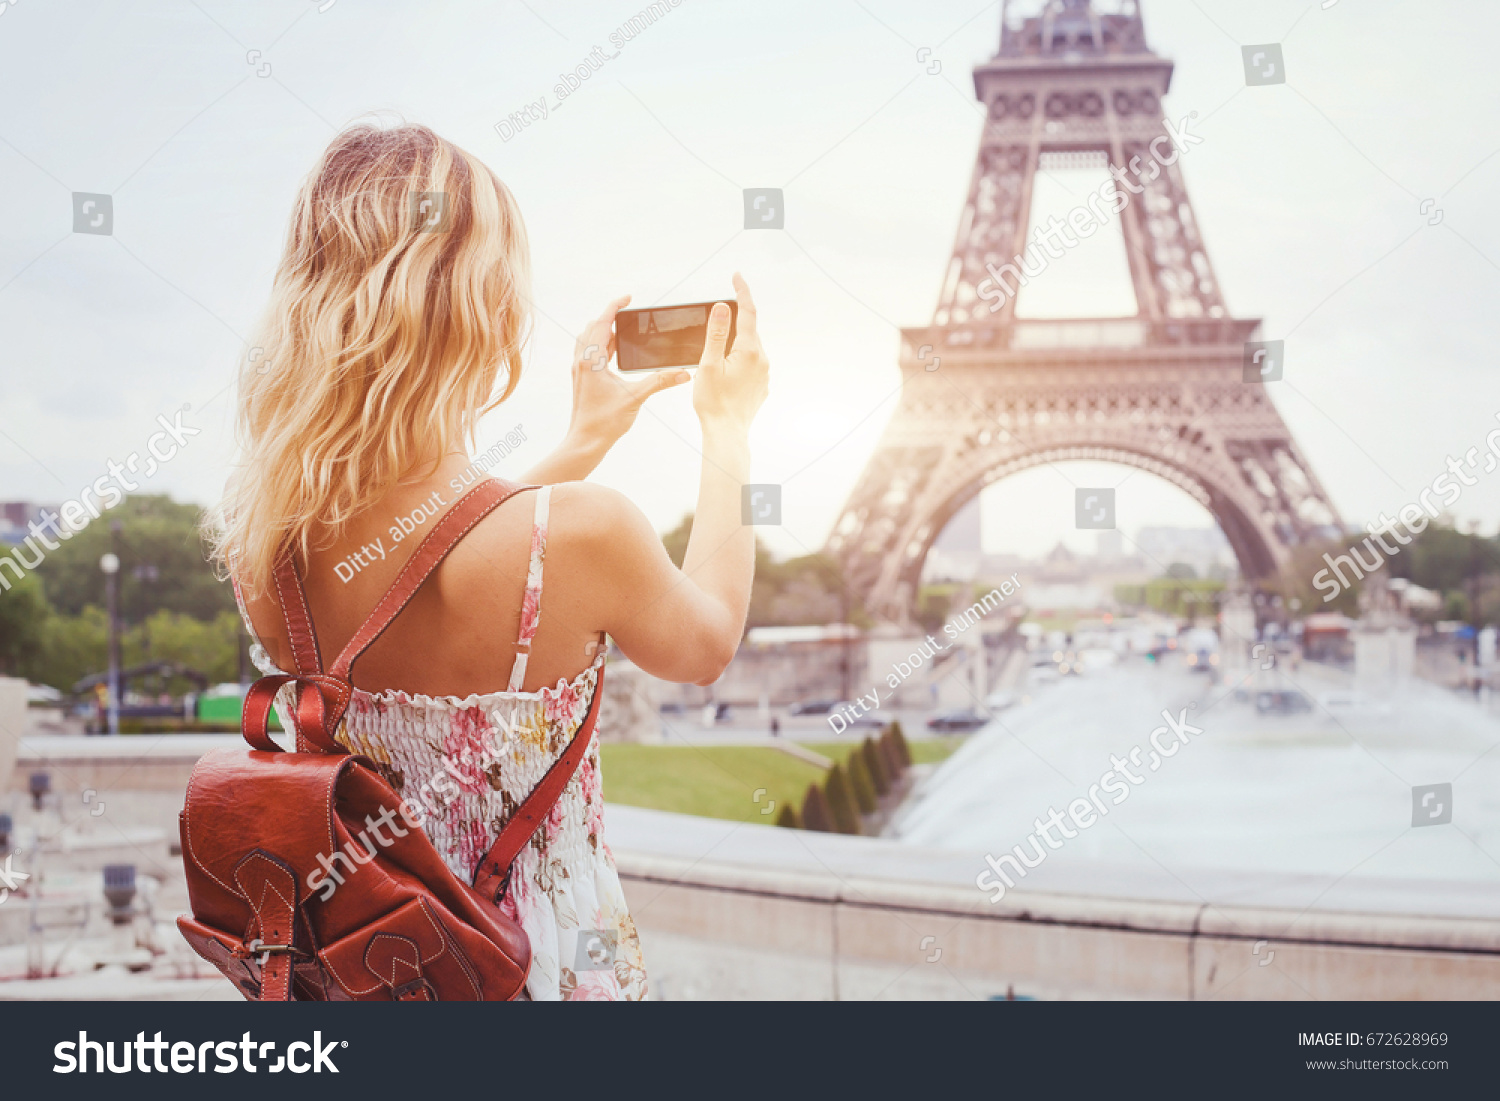 tourist in Paris visiting landmark Eiffel tower, sightseeing in France, woman taking photo on mobile phone #672628969